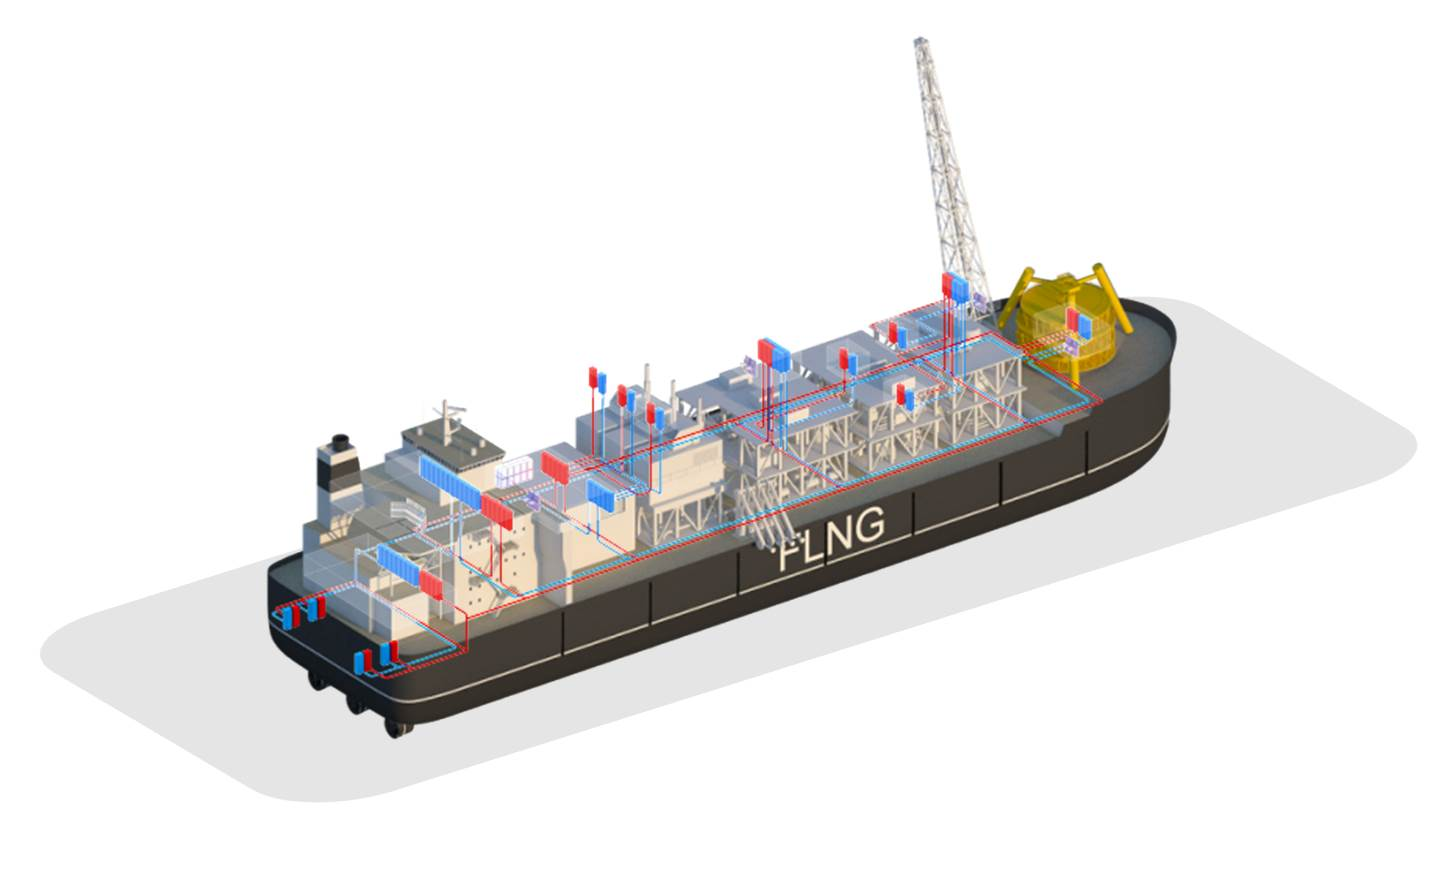 Floating LNG (FLNG)